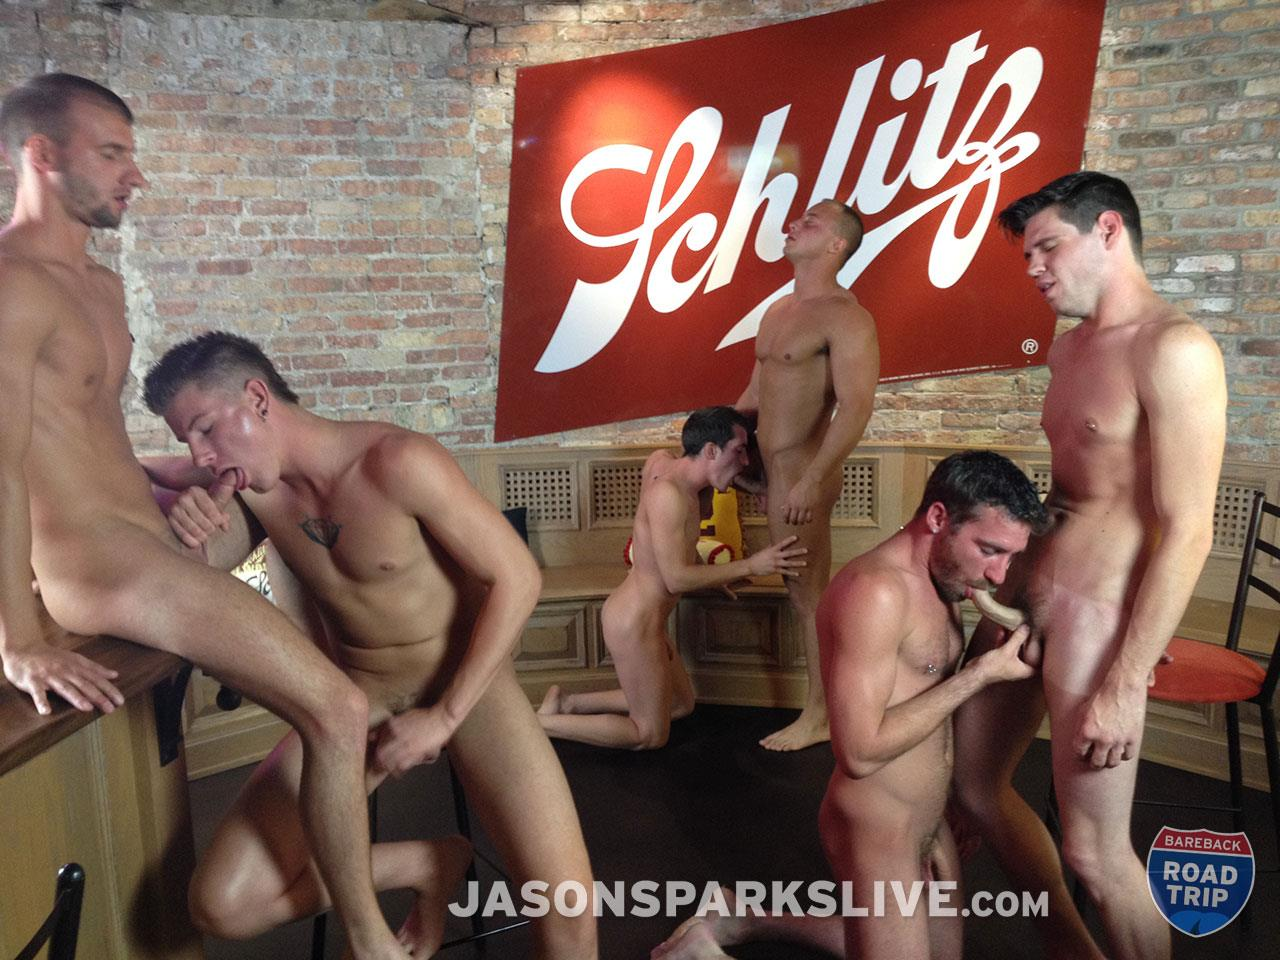 Jason Sparks Live Dustin Tyler Shawn Andrews Brendon Scott Corbin Riley Antonio Paul Jake Matthews Bareback Orgy Amateur Gay Porn 06 Big Cock Amateur Bareback Orgy in Milwaukee